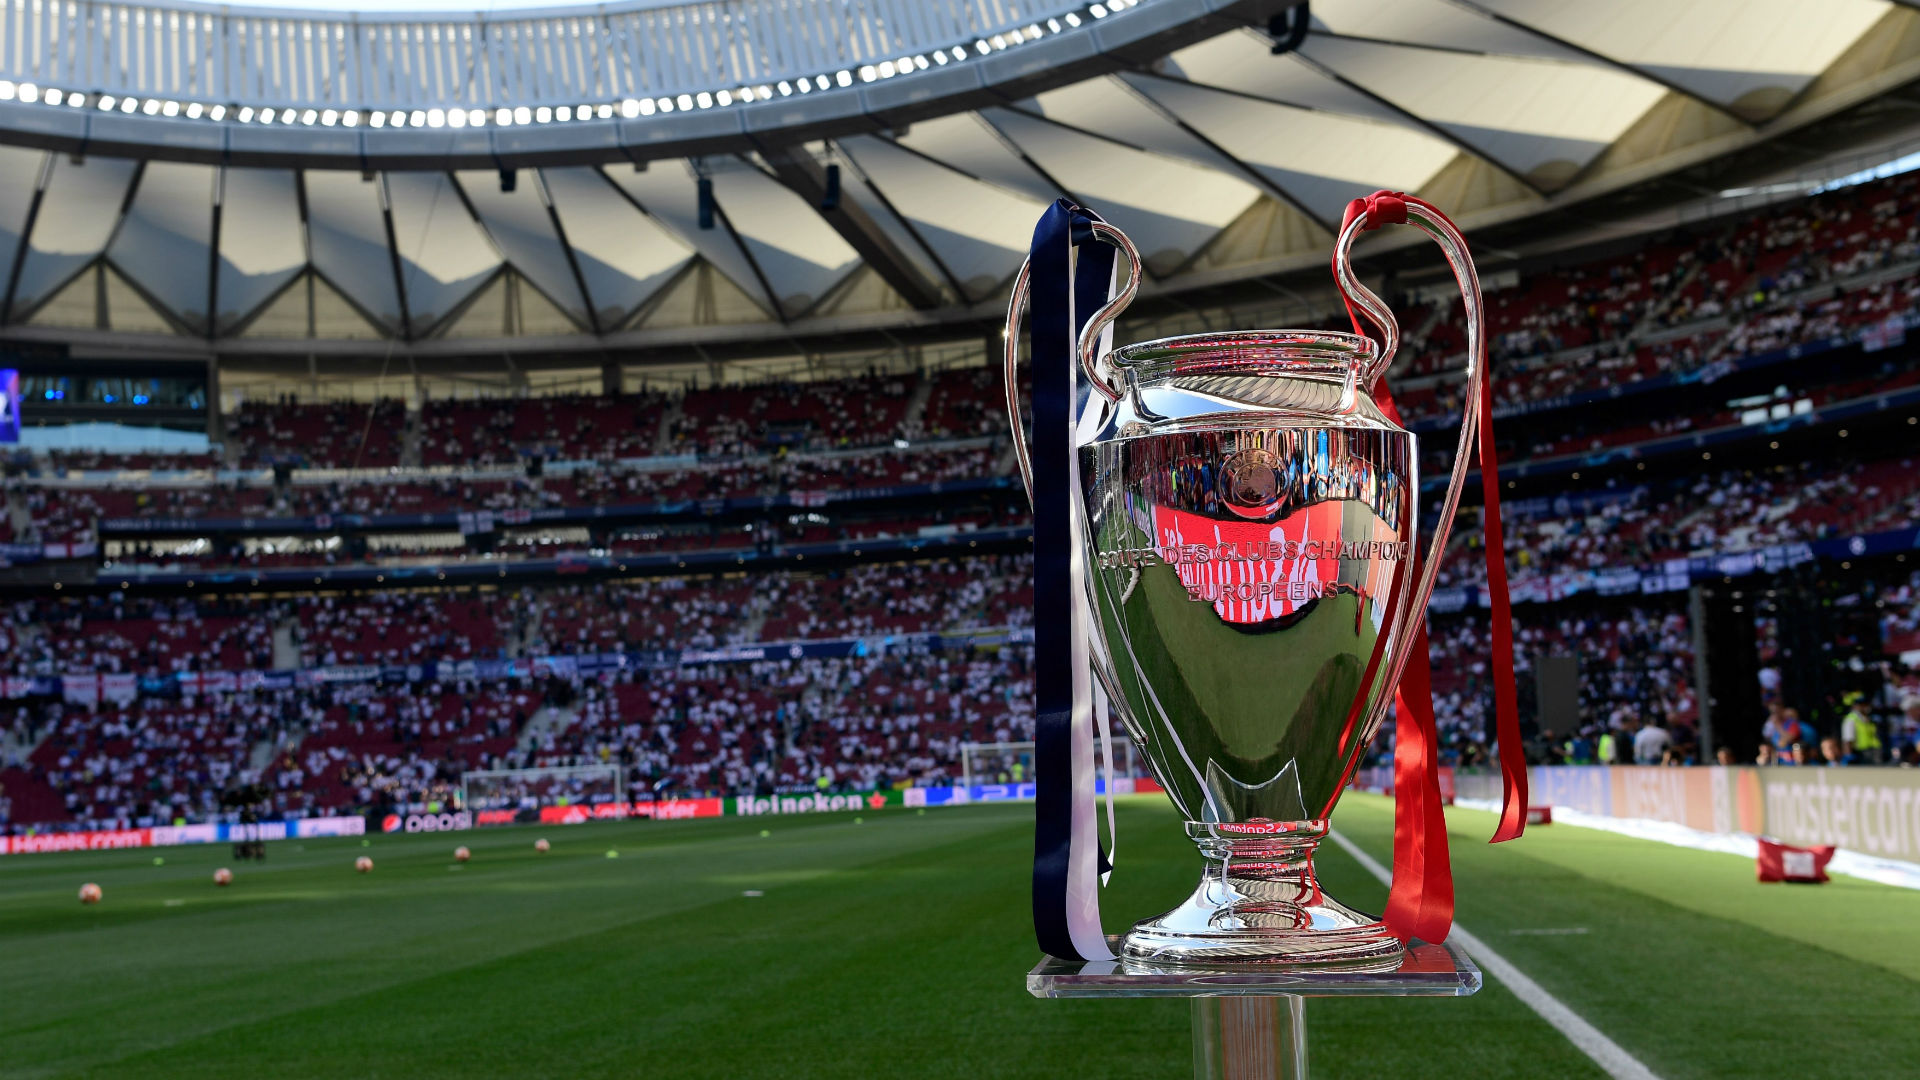 Champions League games today: Full TV schedule, channels to watch 2020 UEFA soccer in USA